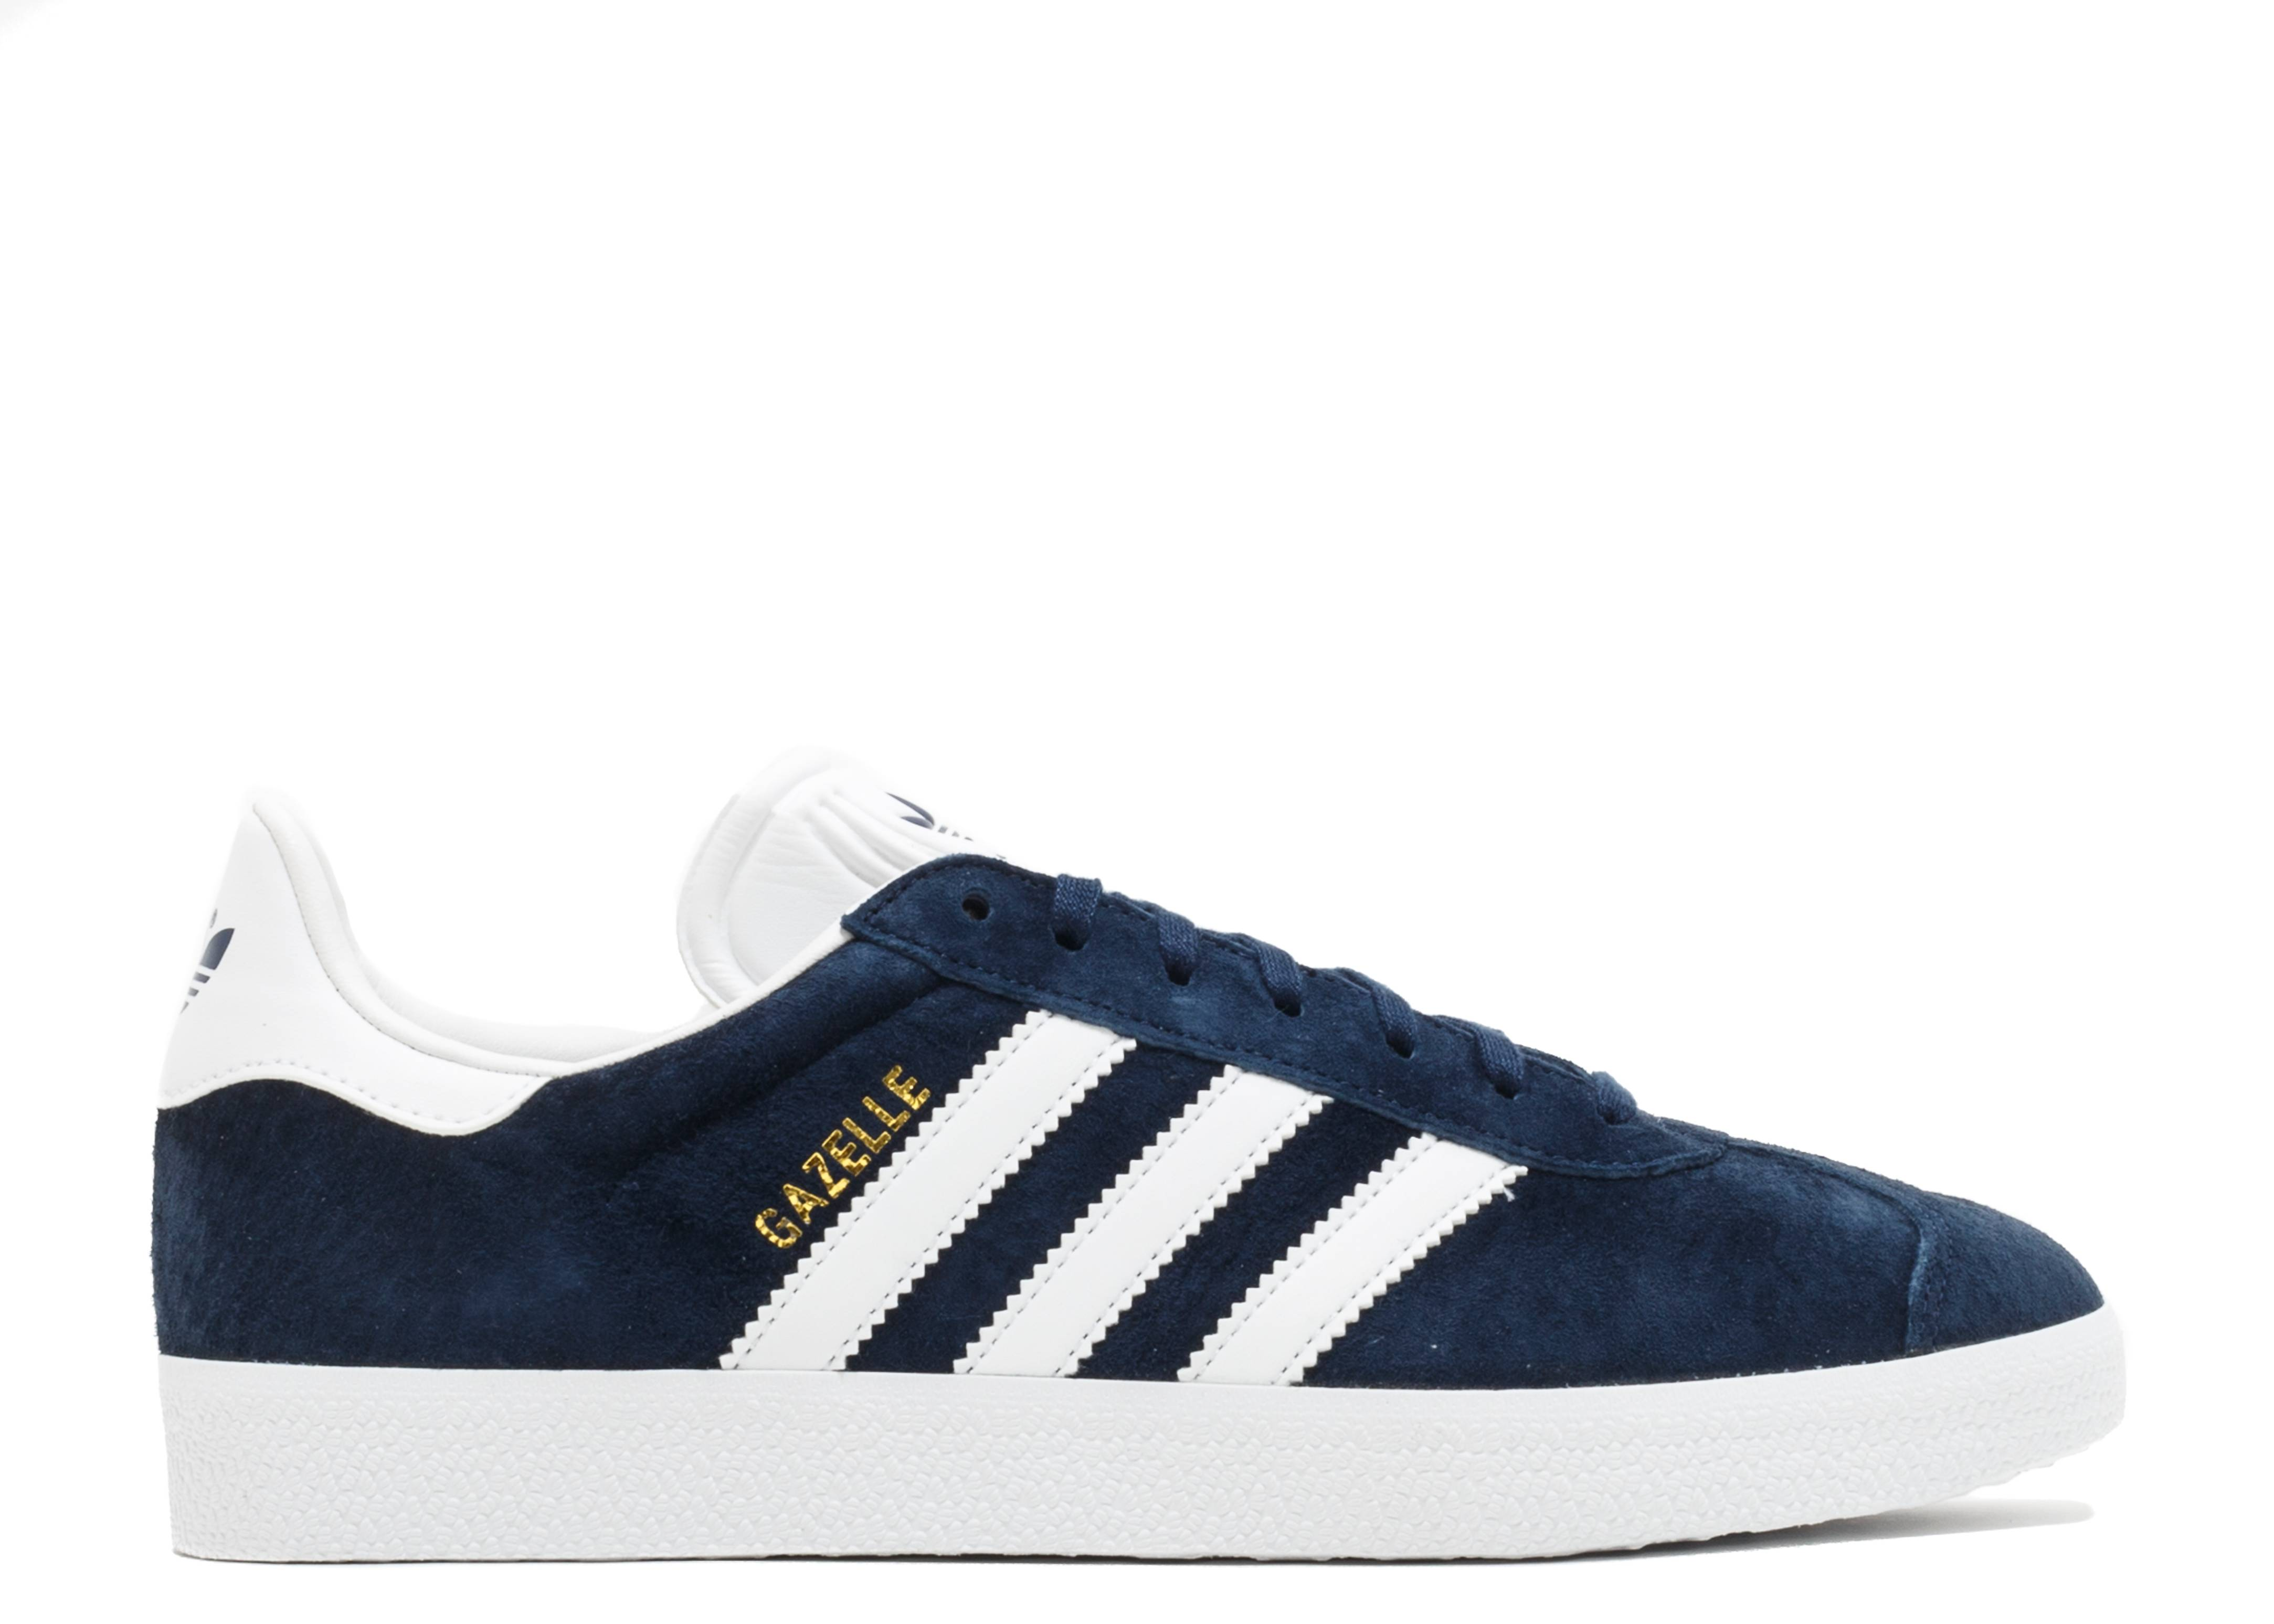 best service 77411 468f6 GAZELLE - Adidas - BB5478 - conavywhitegoldmt  Flight Club